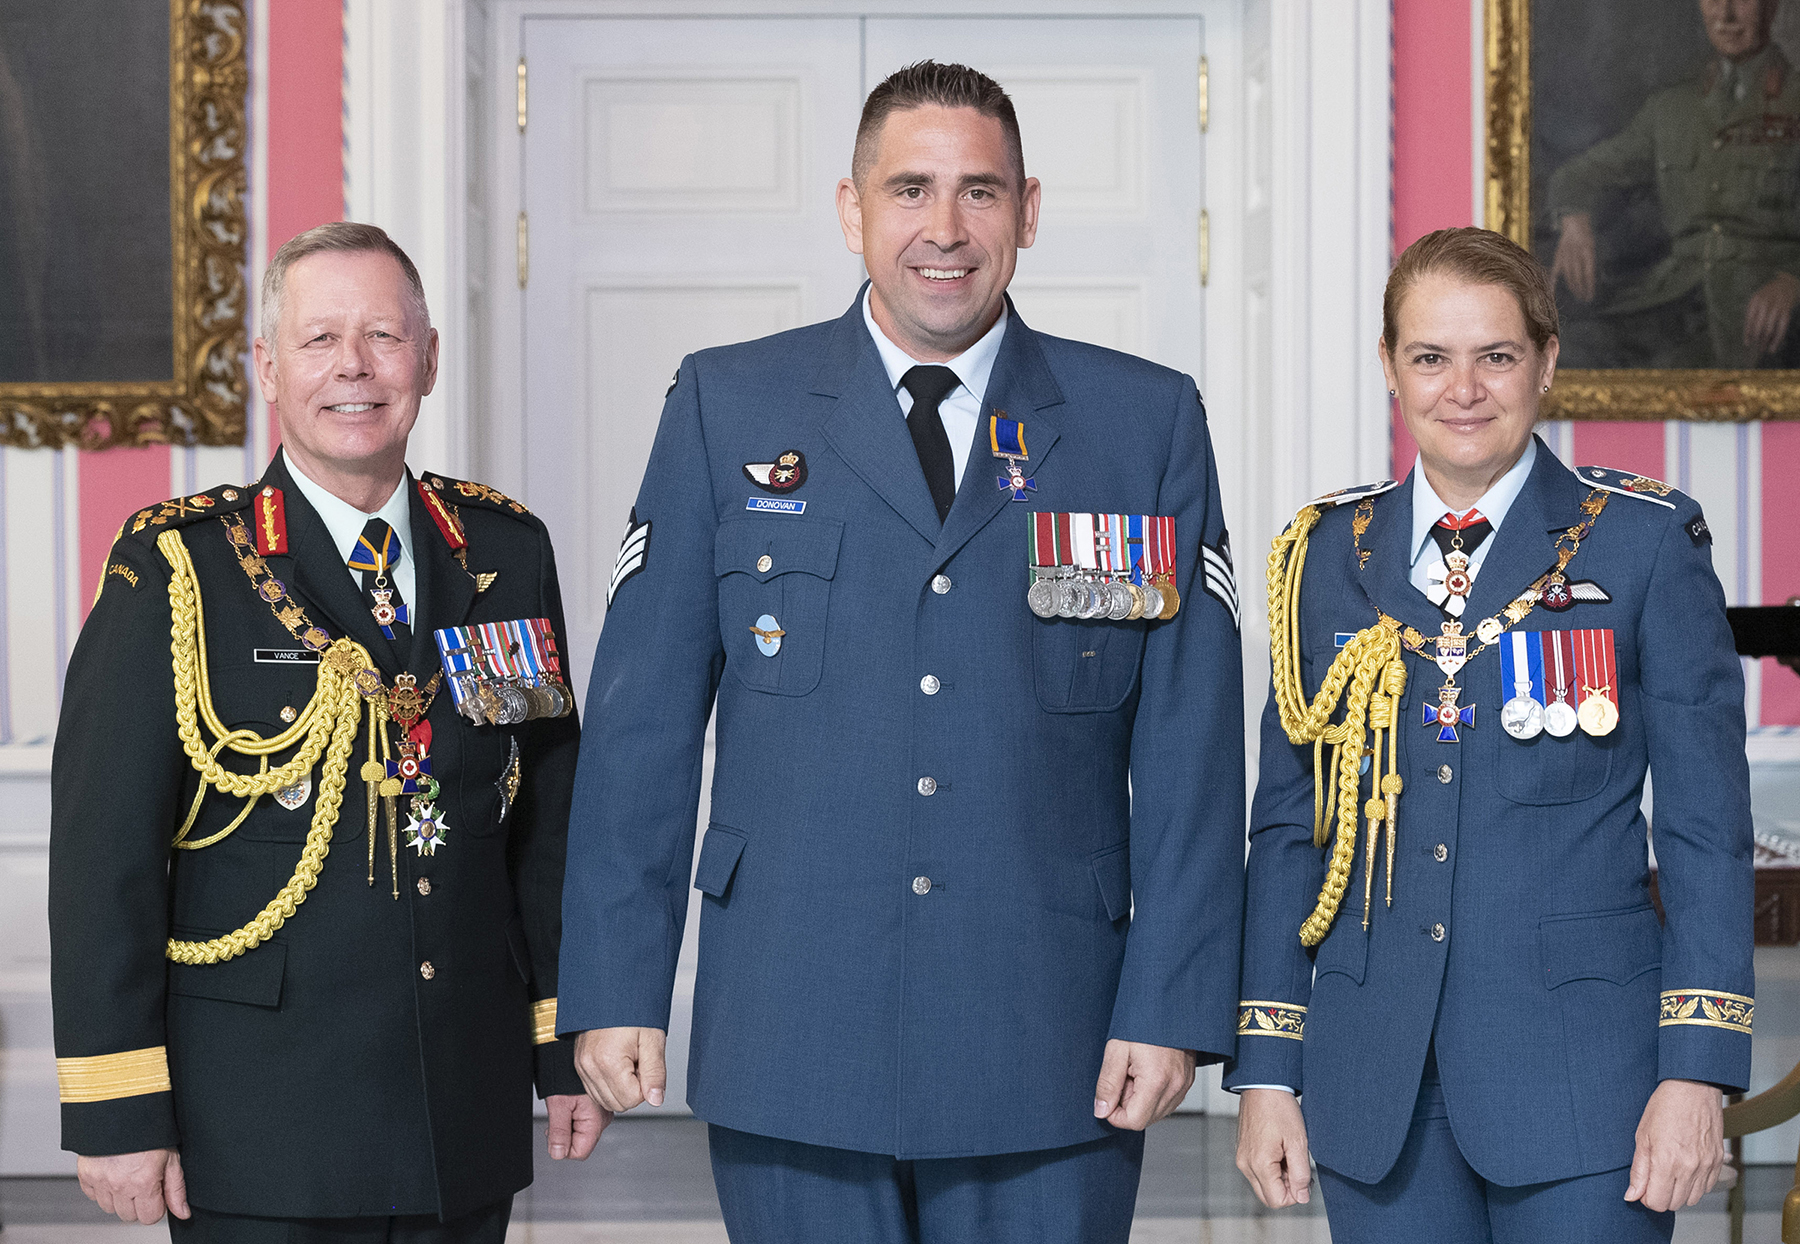 Sergeant Dustin Gerald Donovan, M.M.M., C.D. (centre) stands with Governor-General Julie Payette and Chief of the Defence Staff General Jonathan Vance after receiving the Member insignia of the Order of Military Merit from the Governor General. PHOTO: Sergeant Johanie Maheu, Rideau Hall, © OSGG, GG05-2019-0118-029